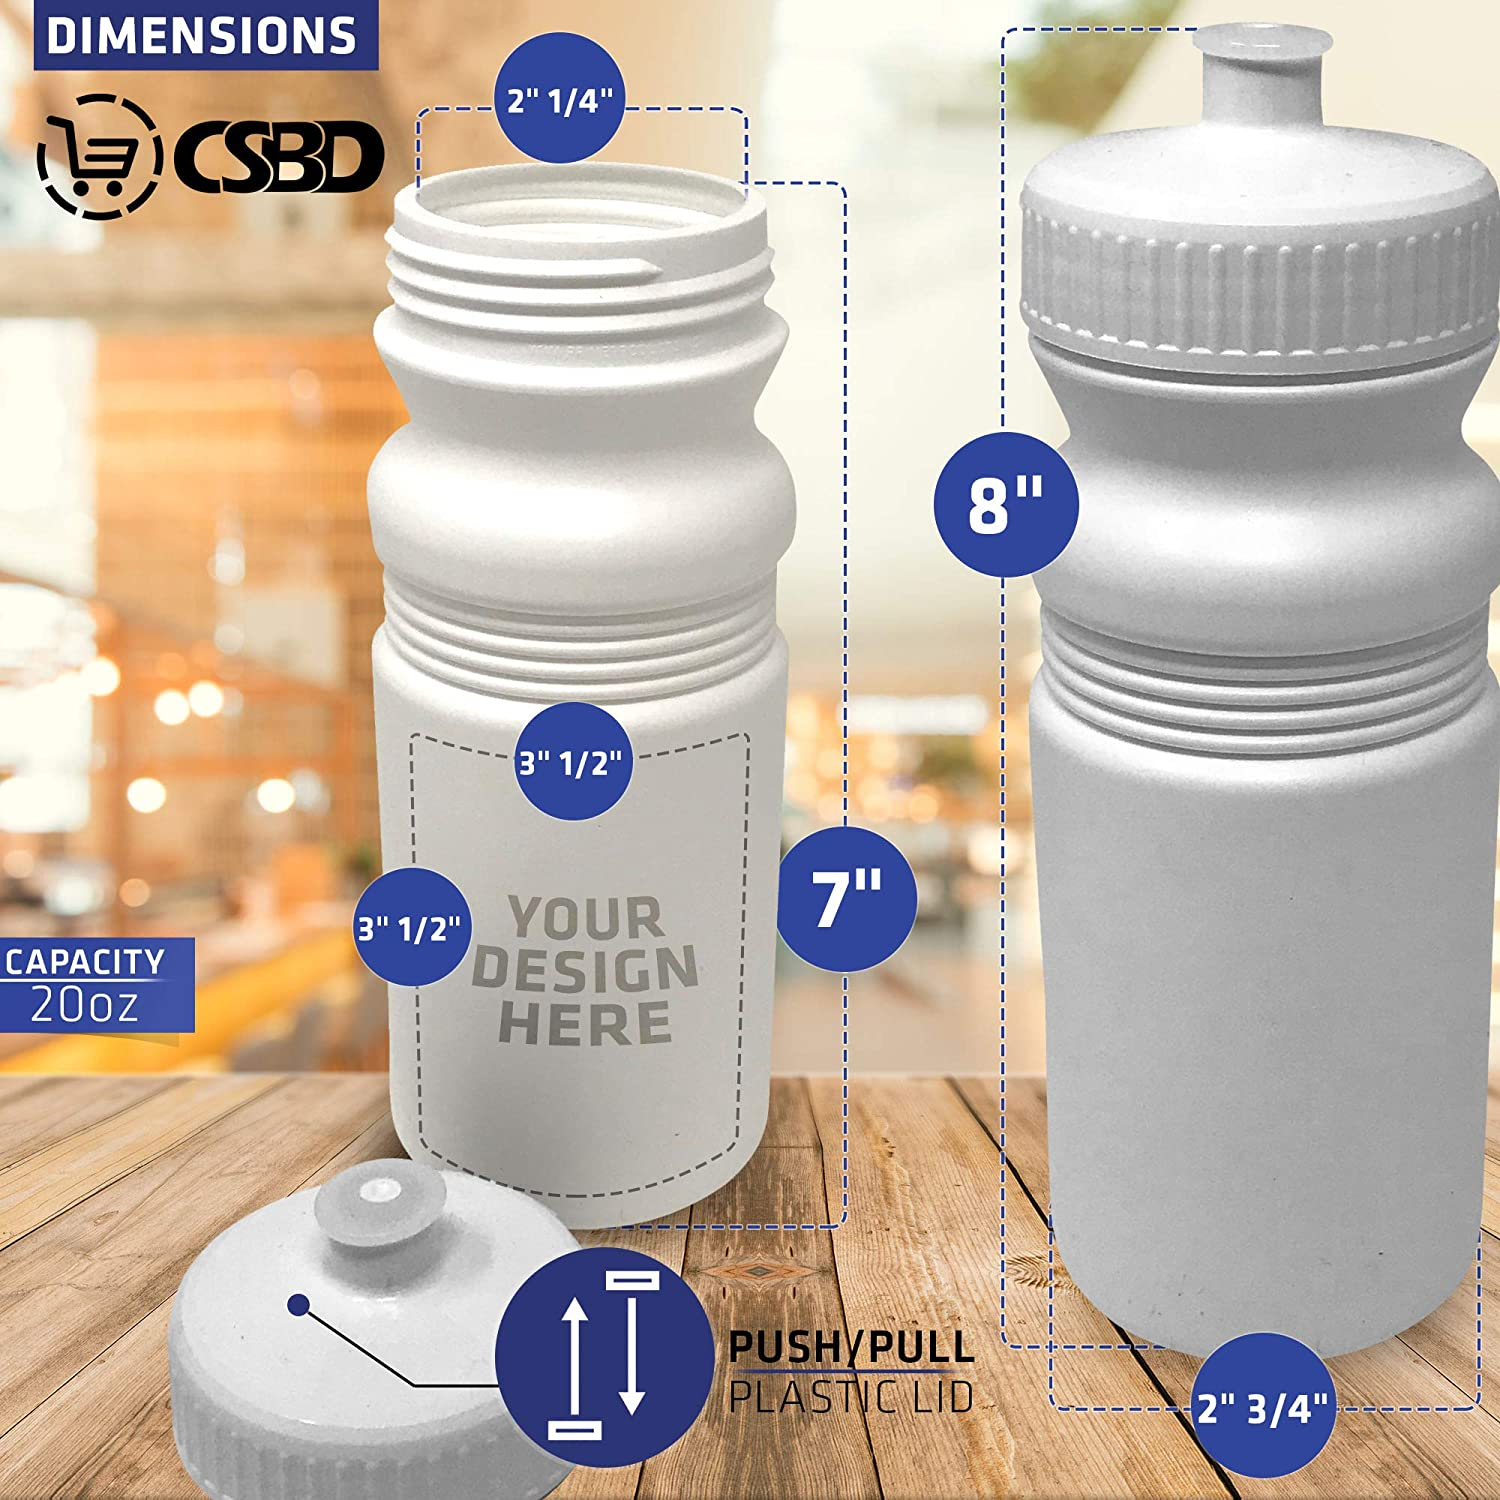 6 Pack HDPE Plastic Bulk Made in USA BPA Free CSBD Blank 20 oz Sports and Fitness Squeeze Water Bottles